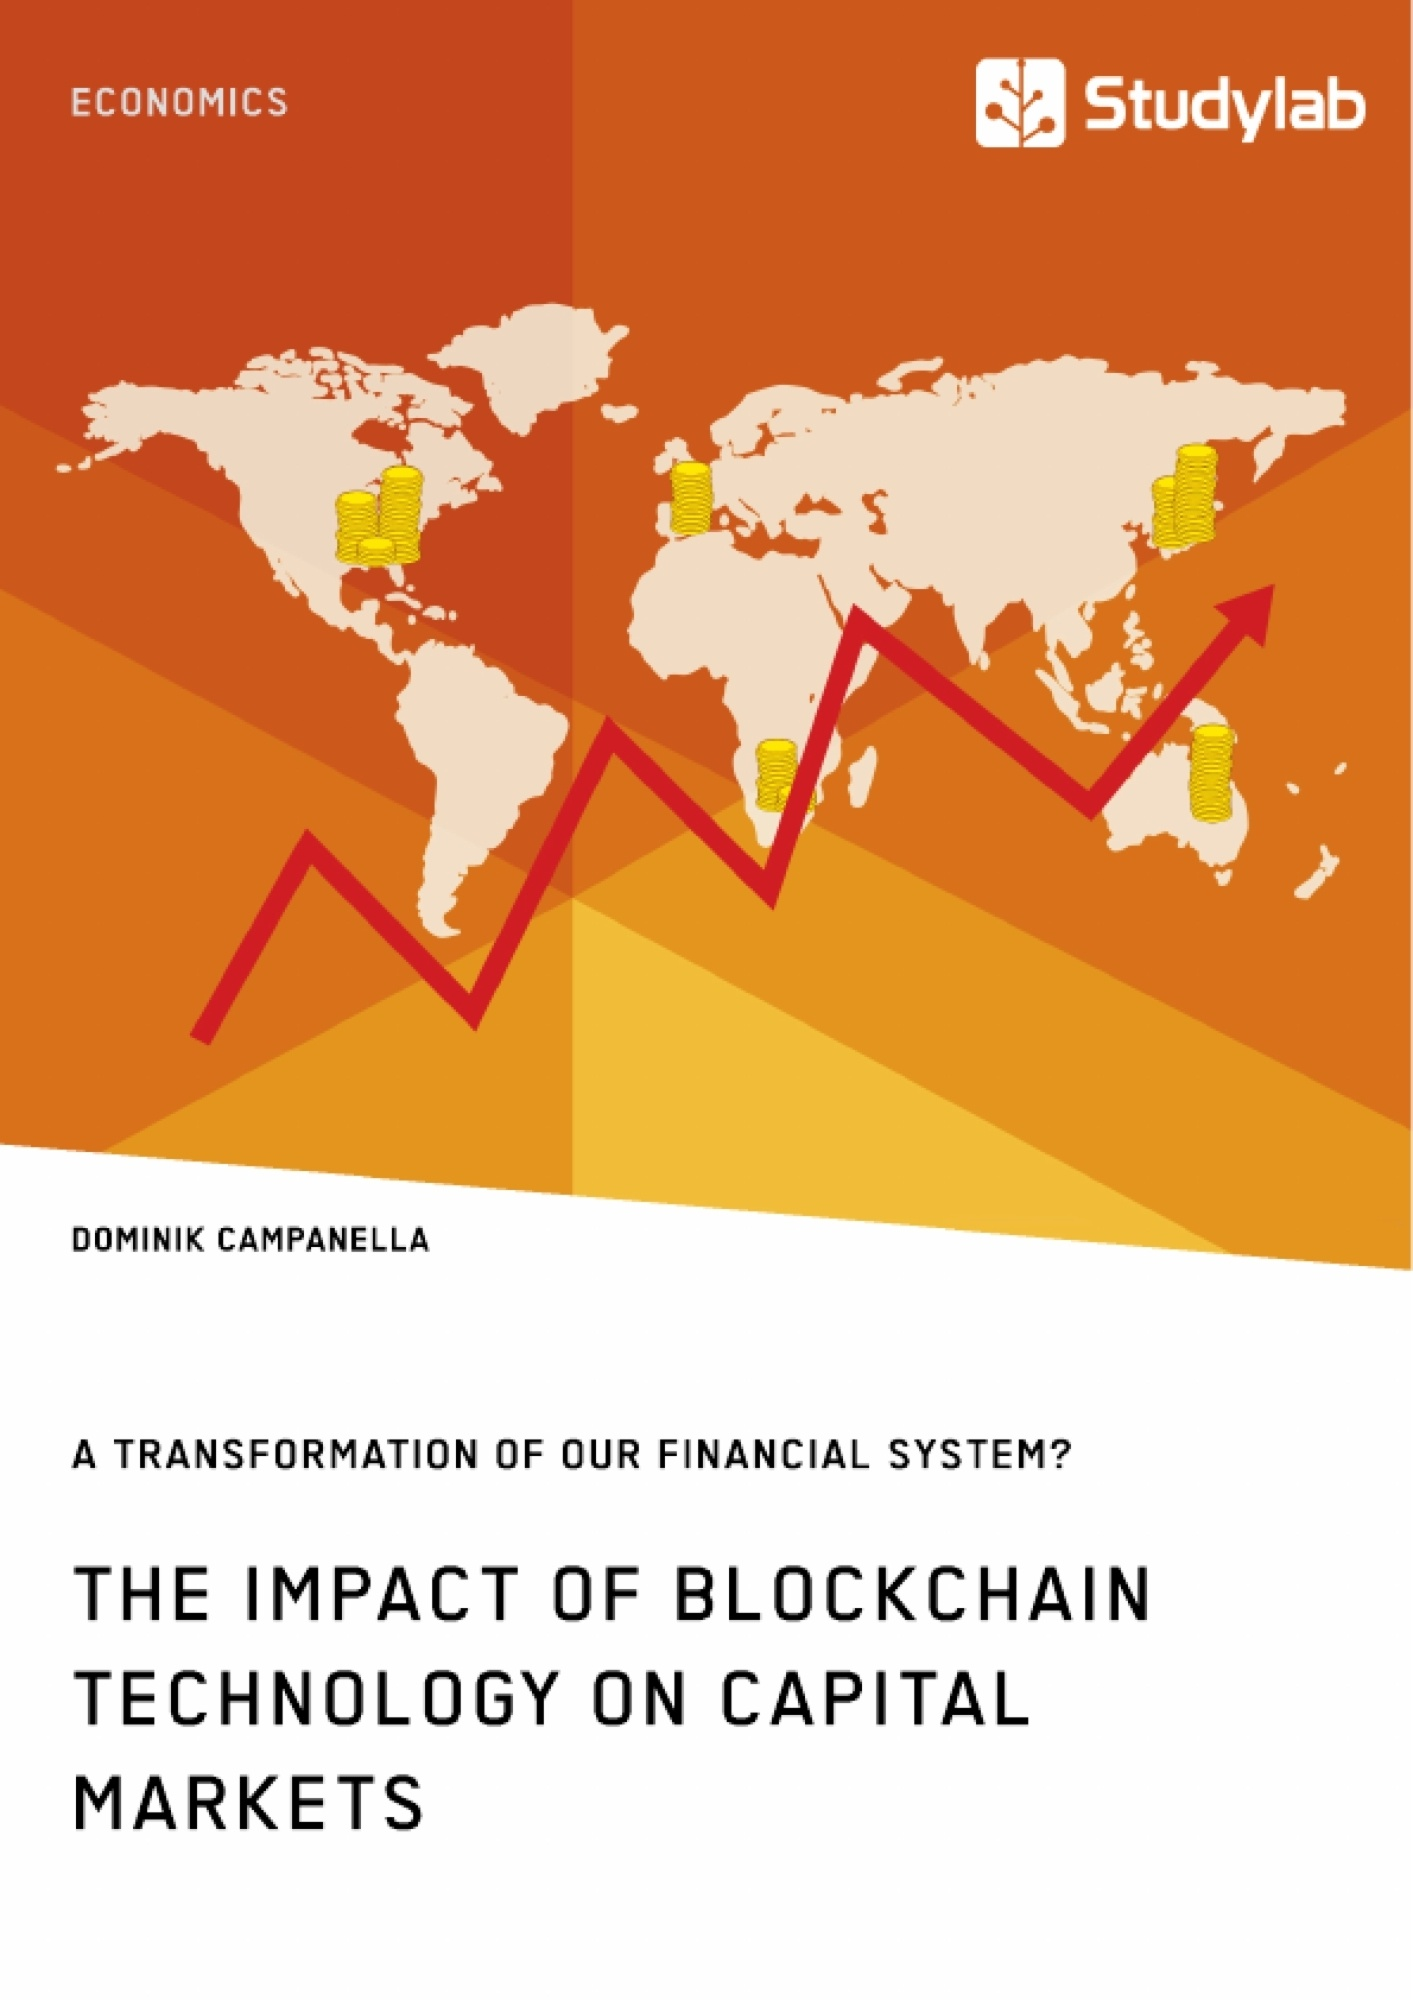 Title: The Impact of Blockchain Technology on Capital Markets. A Transformation of our Financial System?